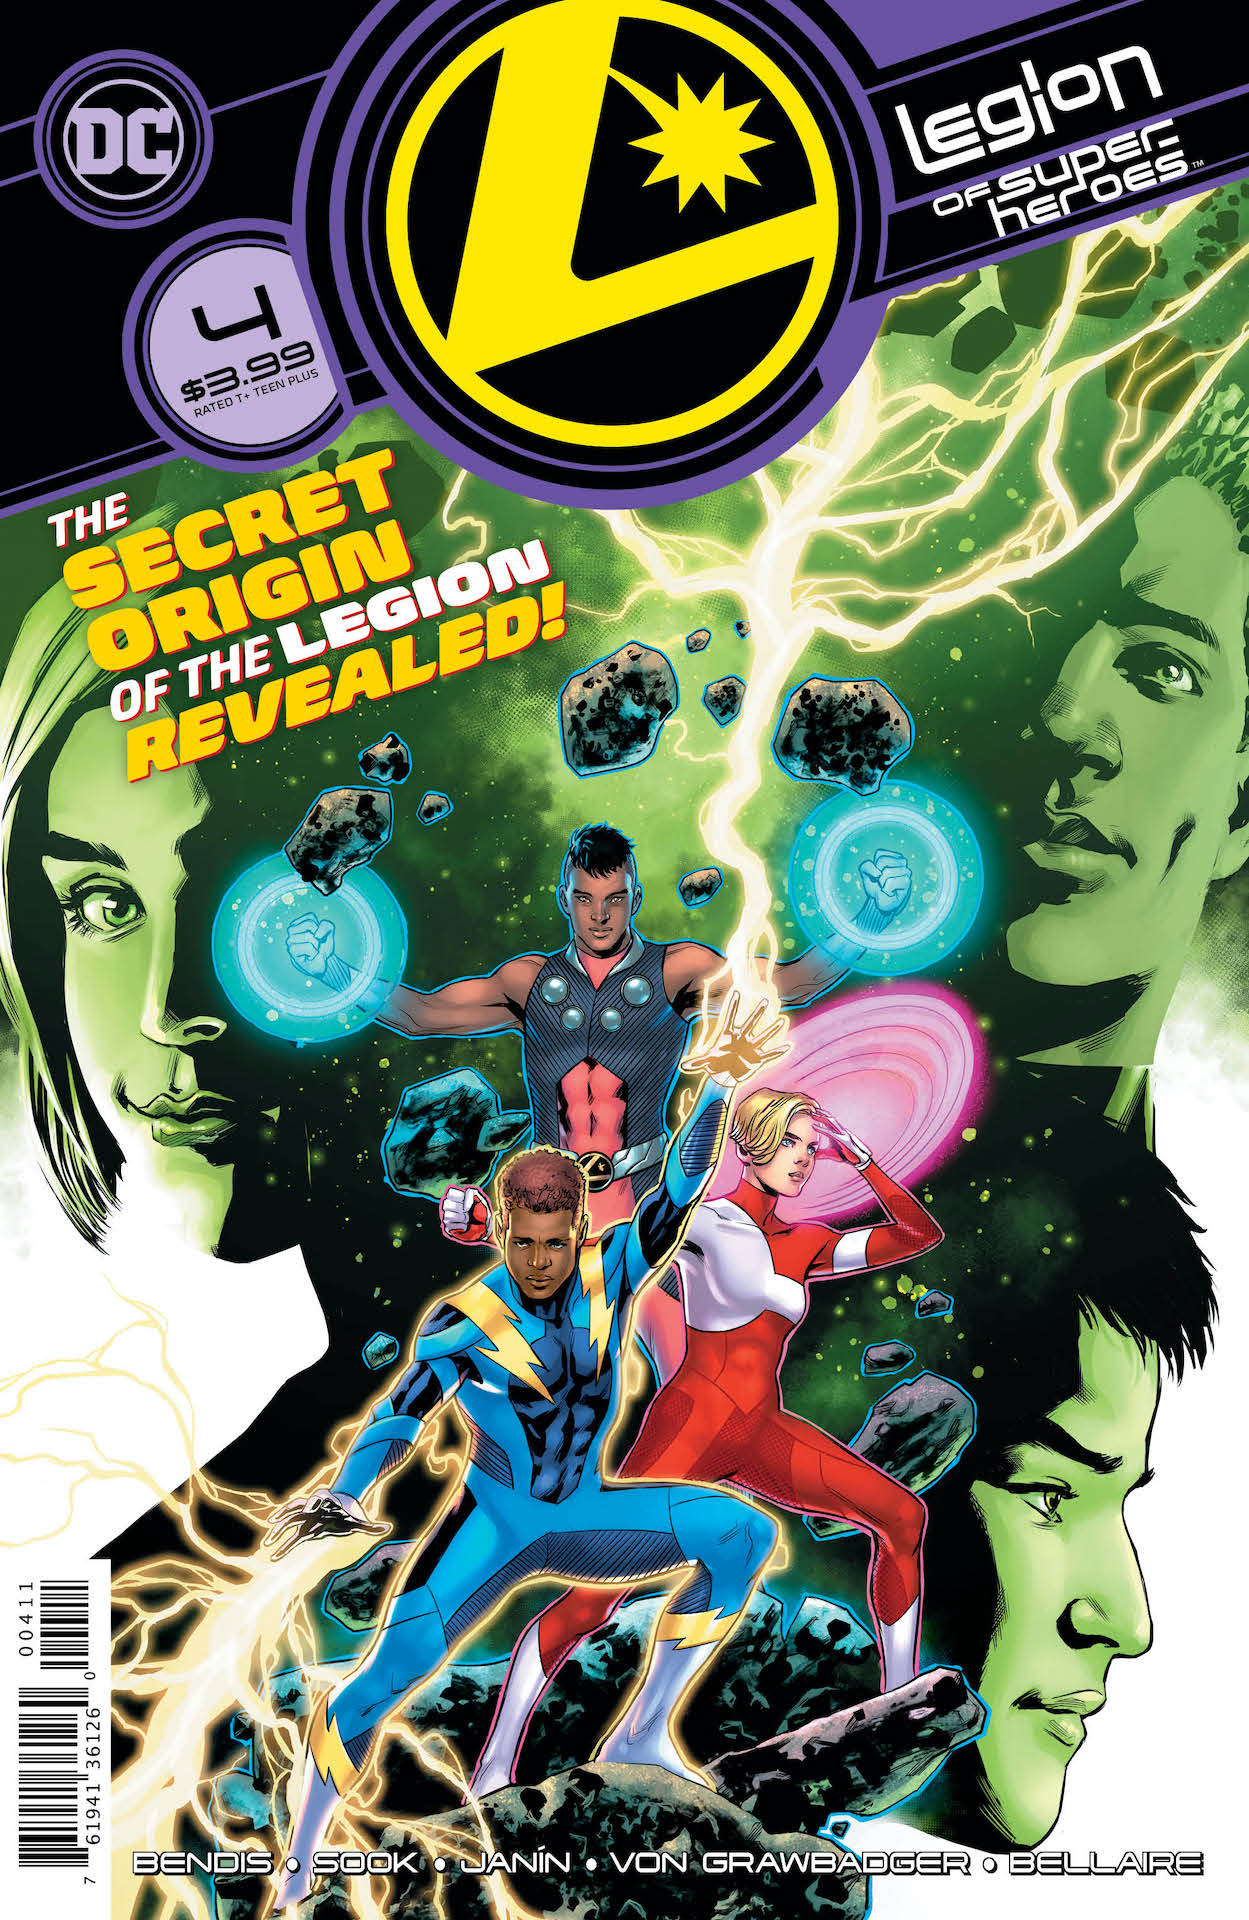 DC Preview: Legion of Super-Heroes #4